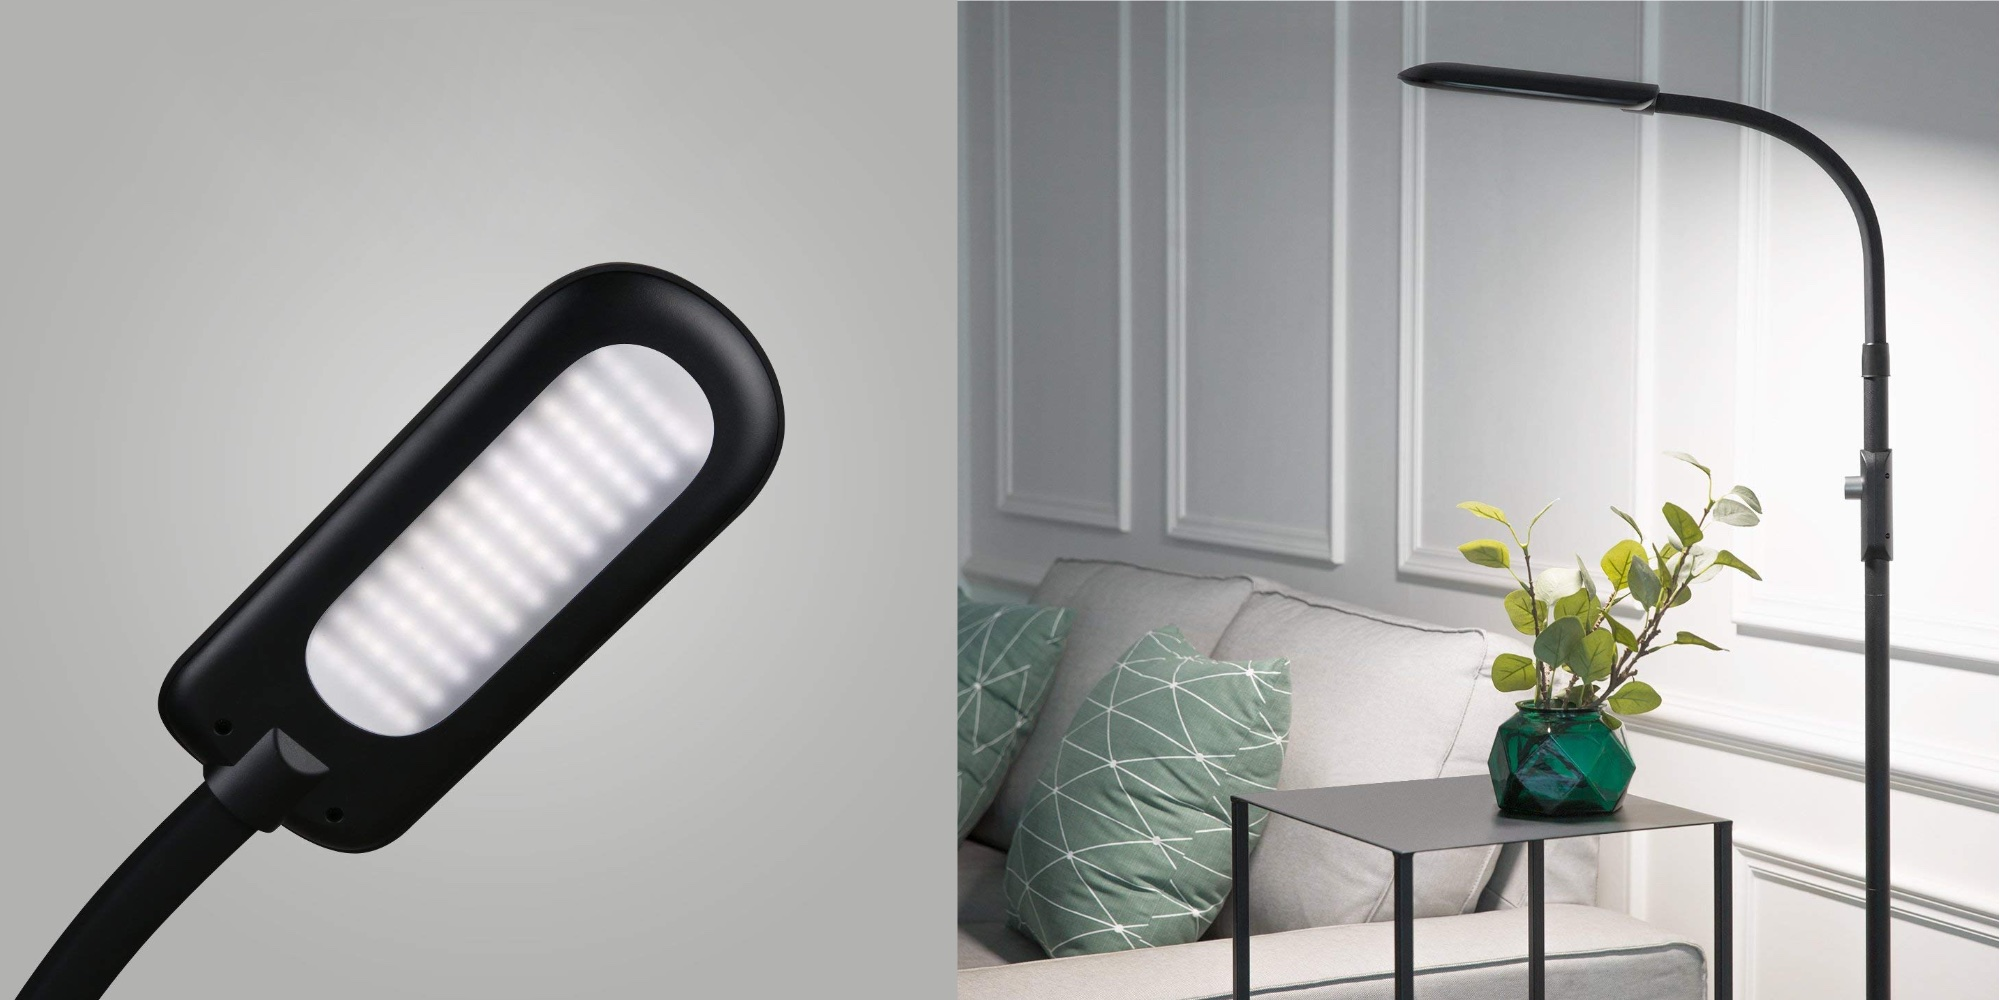 Aukey's 12W Dimmable Gooseneck LED Floor Lamp Gets $30